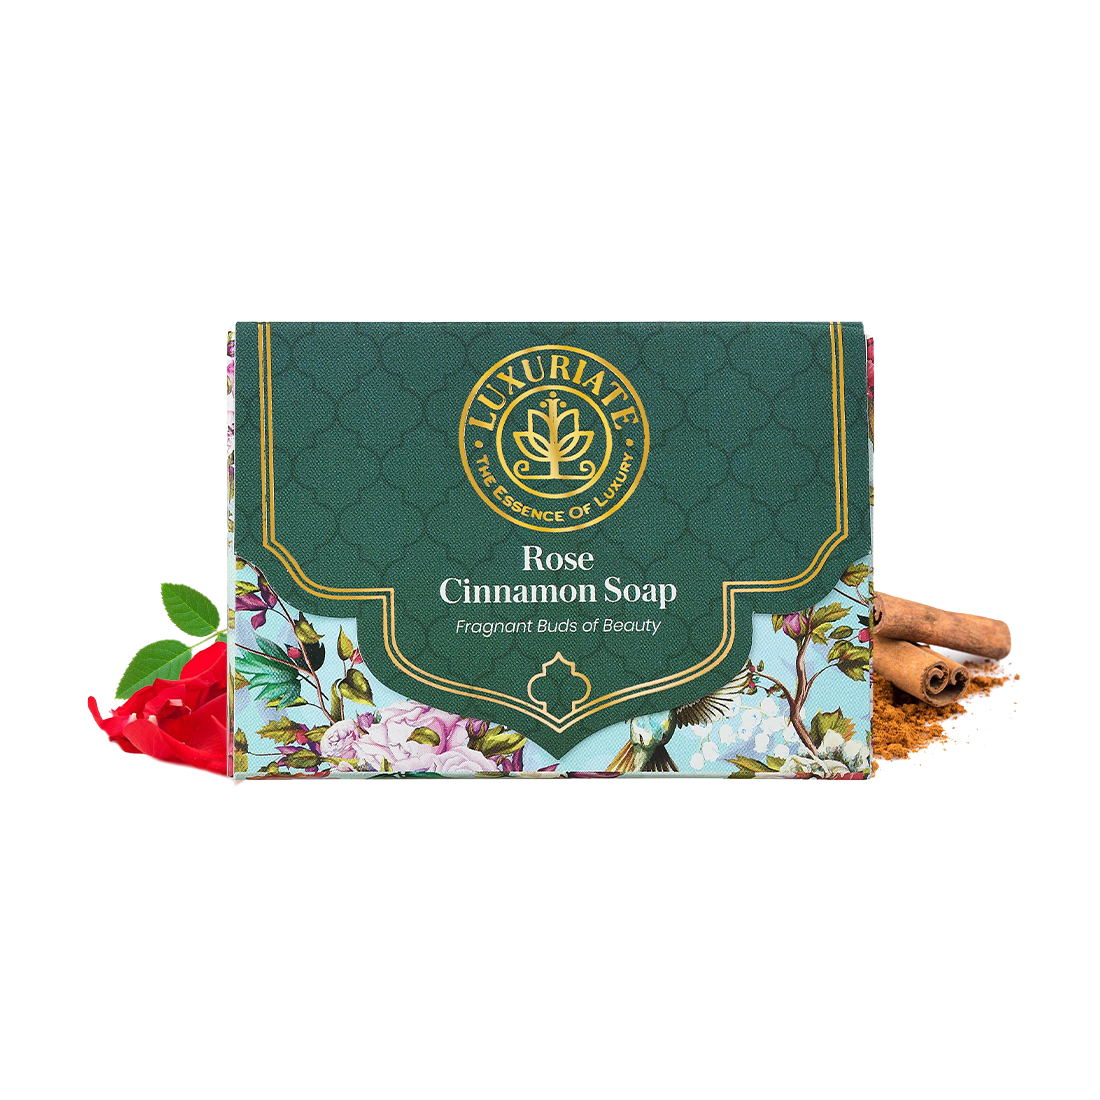 LUXURIATE | LUXURIATE Rose Cinnamon Fragnant Buds of Beauty Soap Bar for Men and Women,125 gm